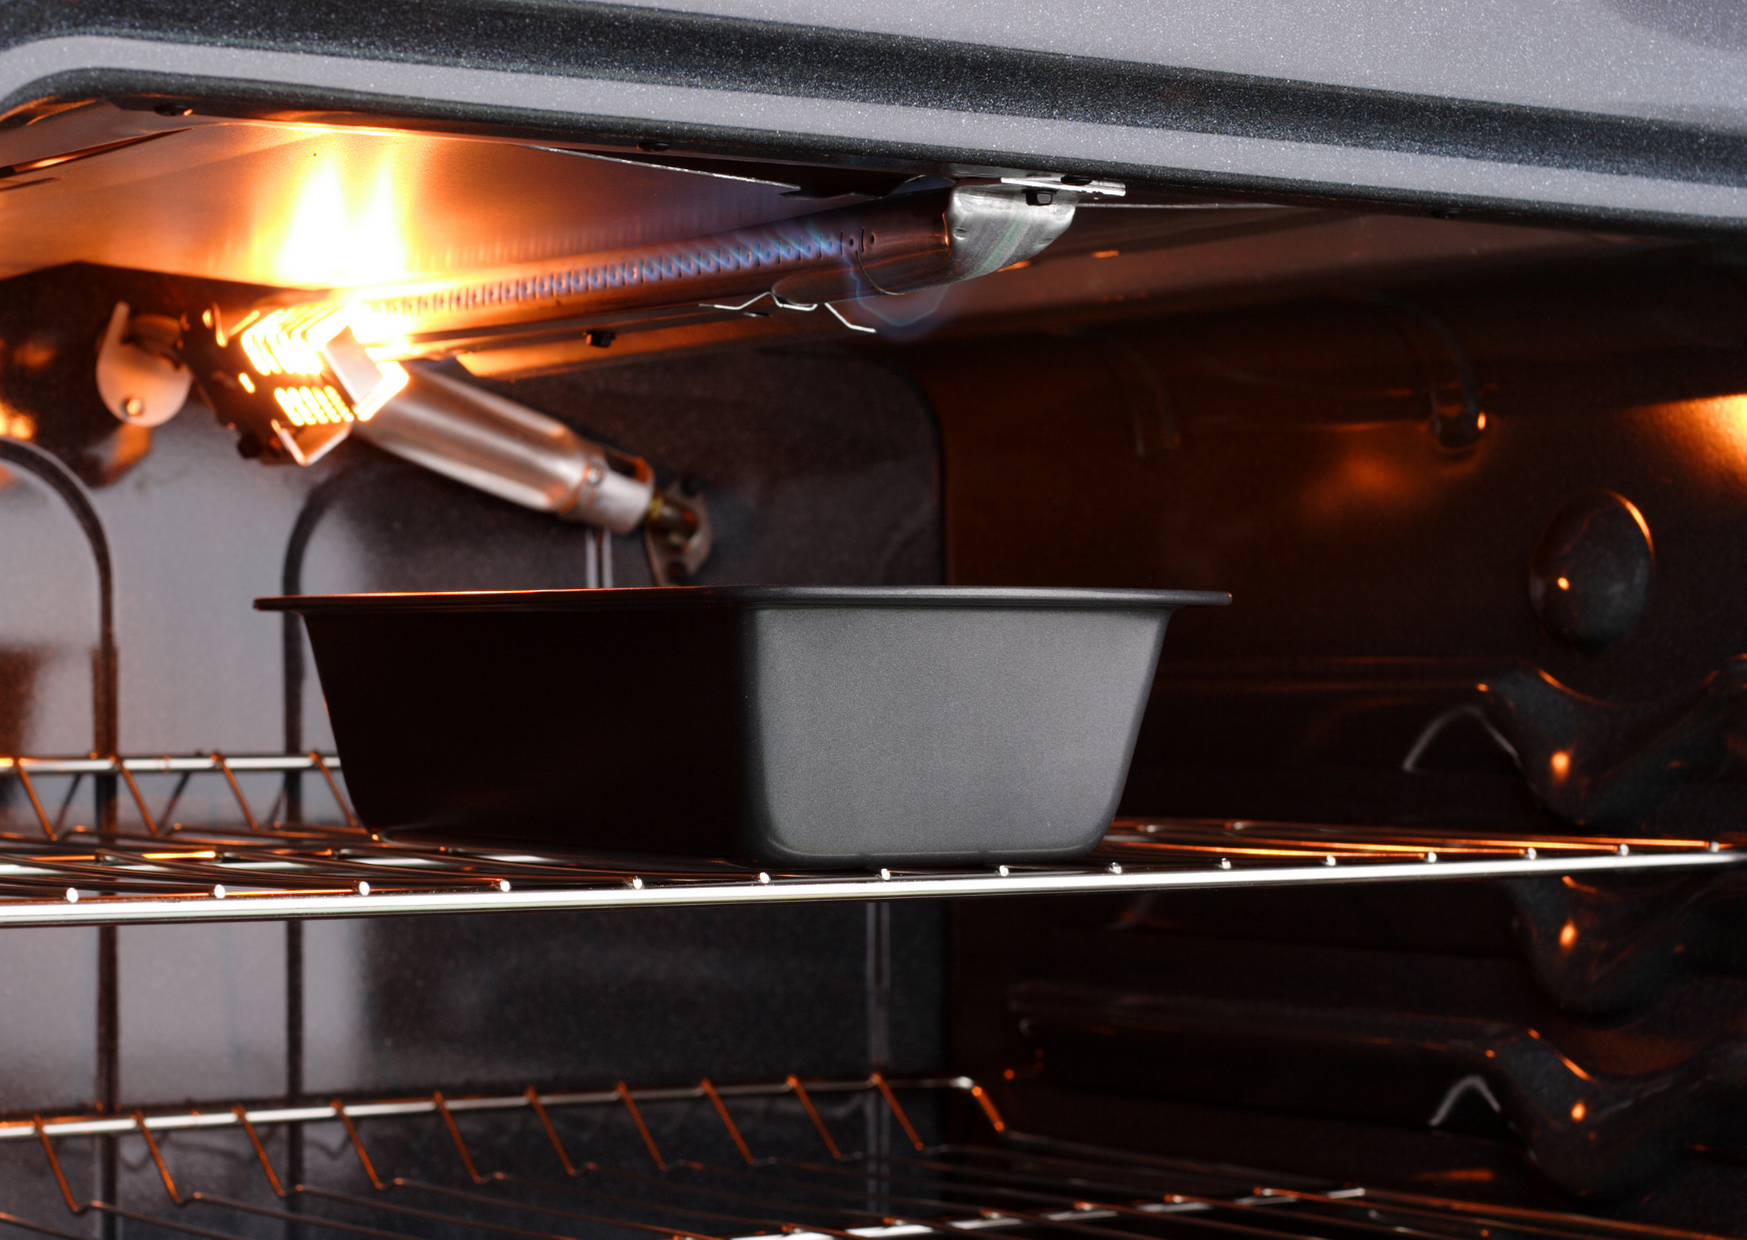 Photo of Inside the gas oven